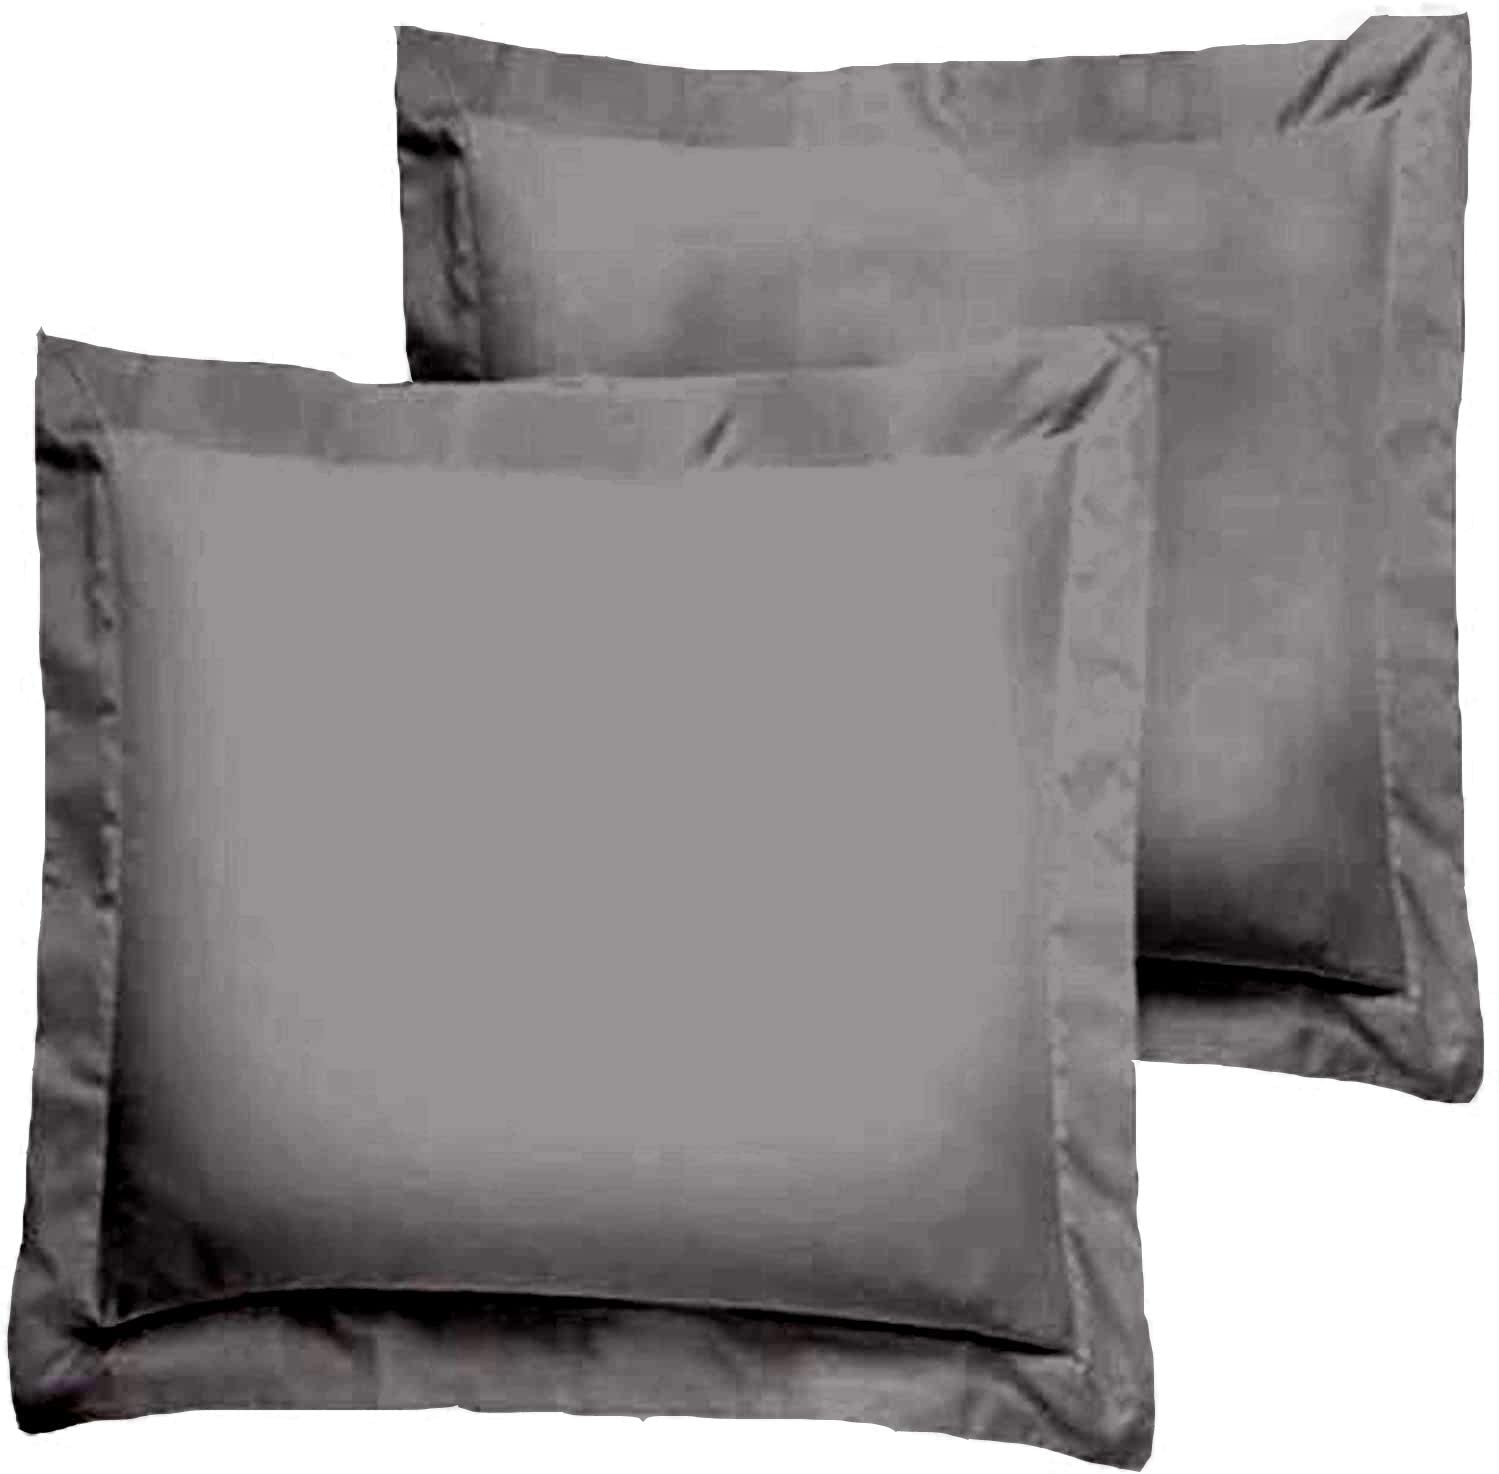 Trust Layer 800 Thread Count 100% Organic Cotton Throw Pillow Sized 16 x 16 inch Pillow Shams Set of 2 Dark Grey Solid